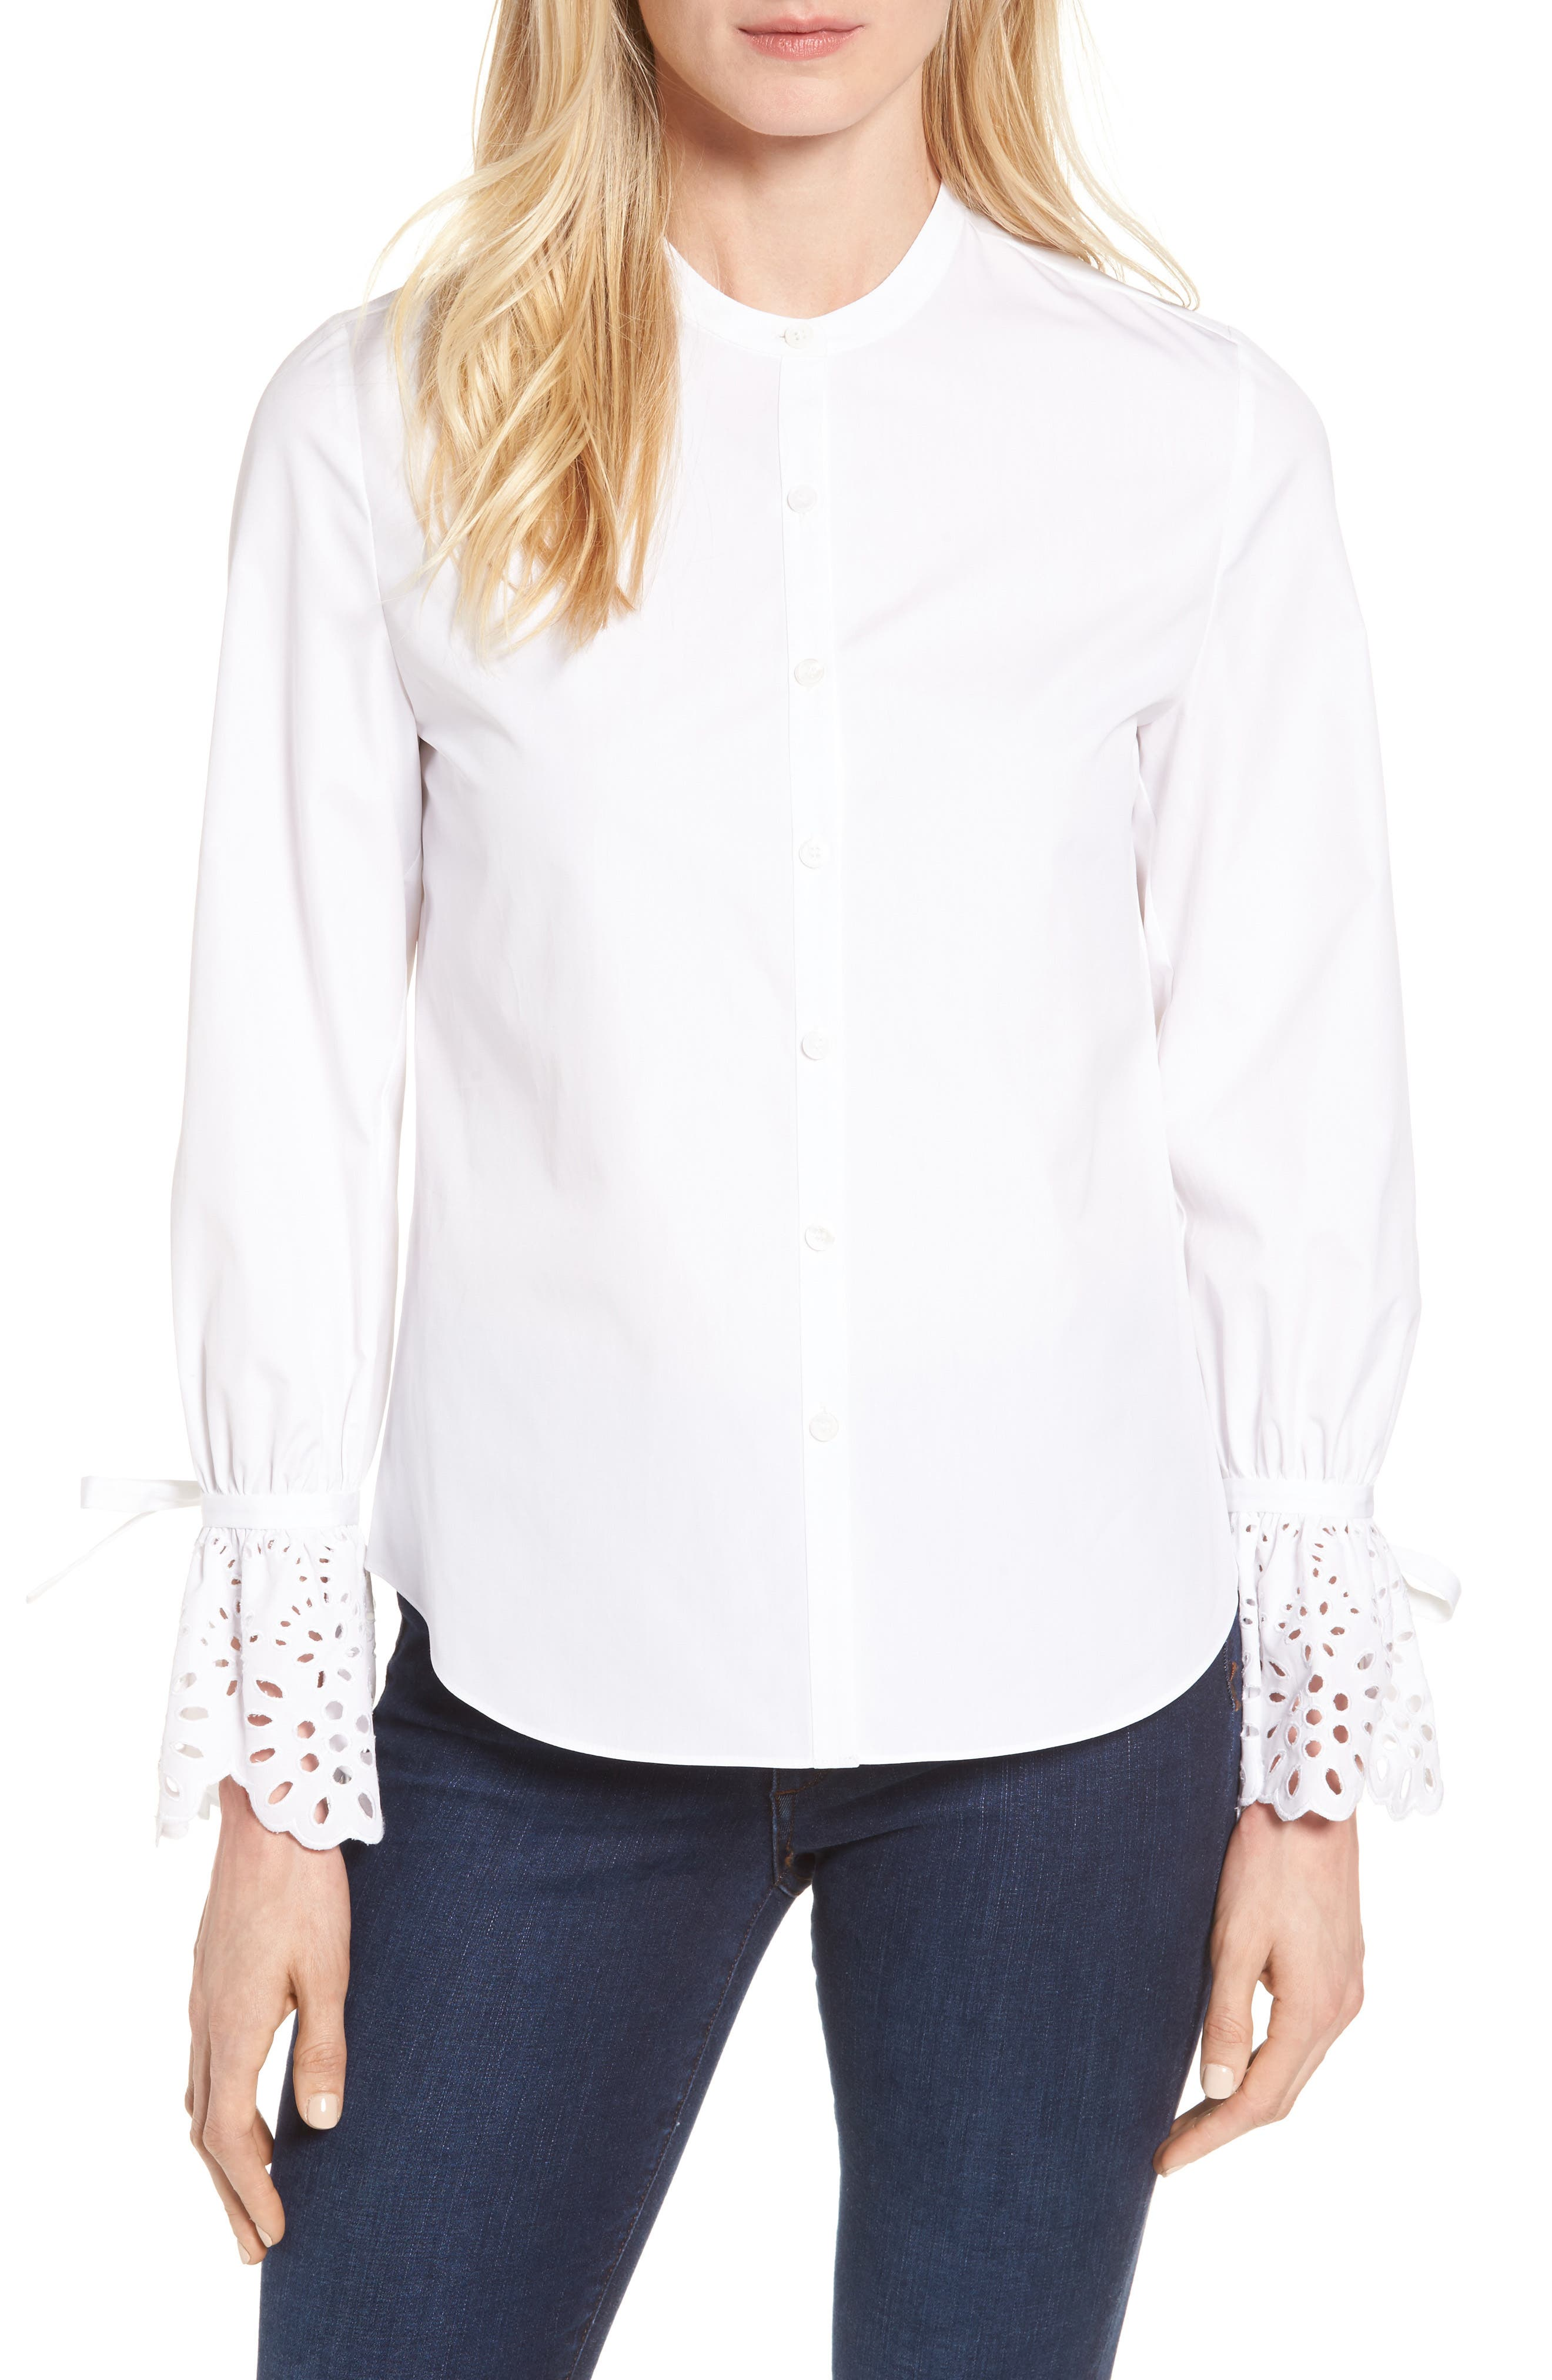 Main Image - Nordstrom Signature Eyelet Cuff Poplin Blouse